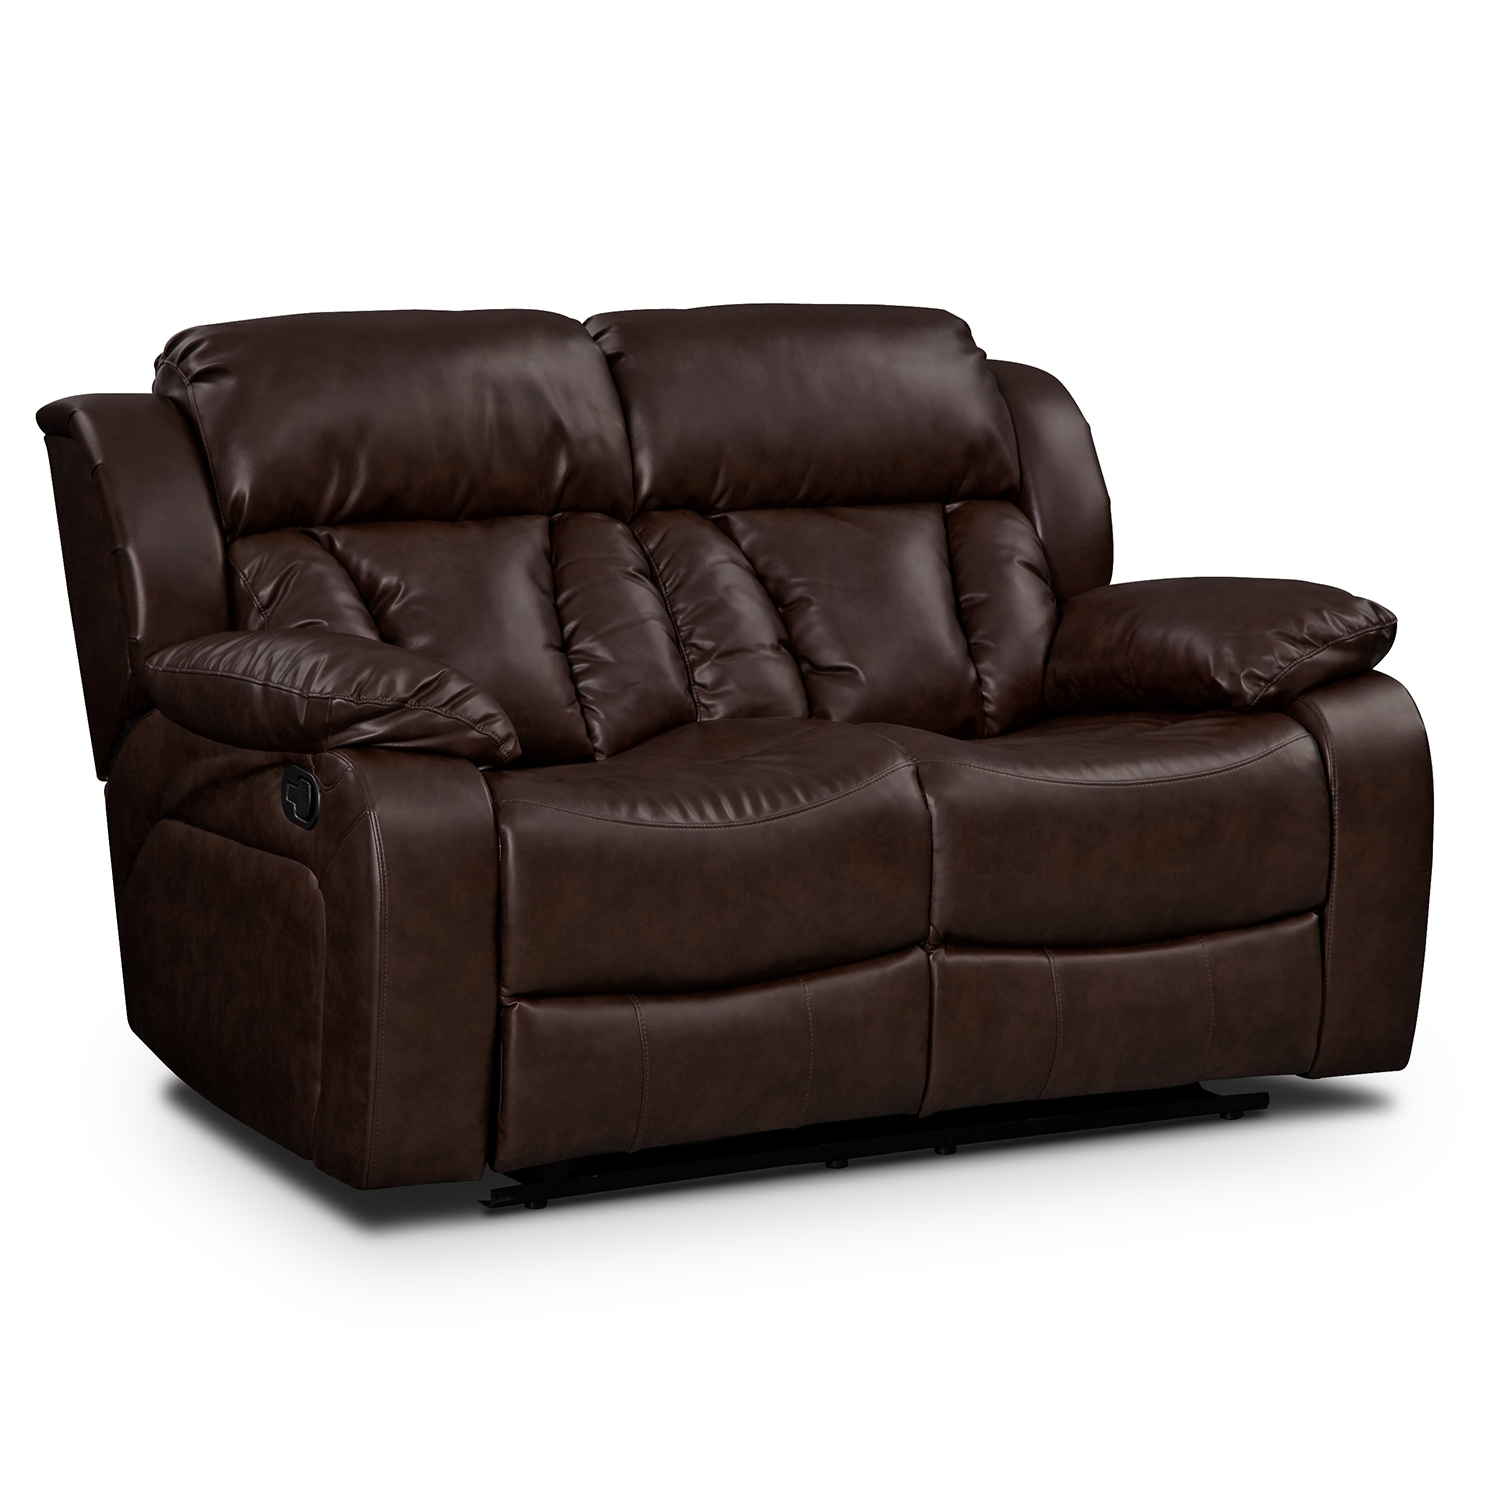 Double Wide Recliners 2